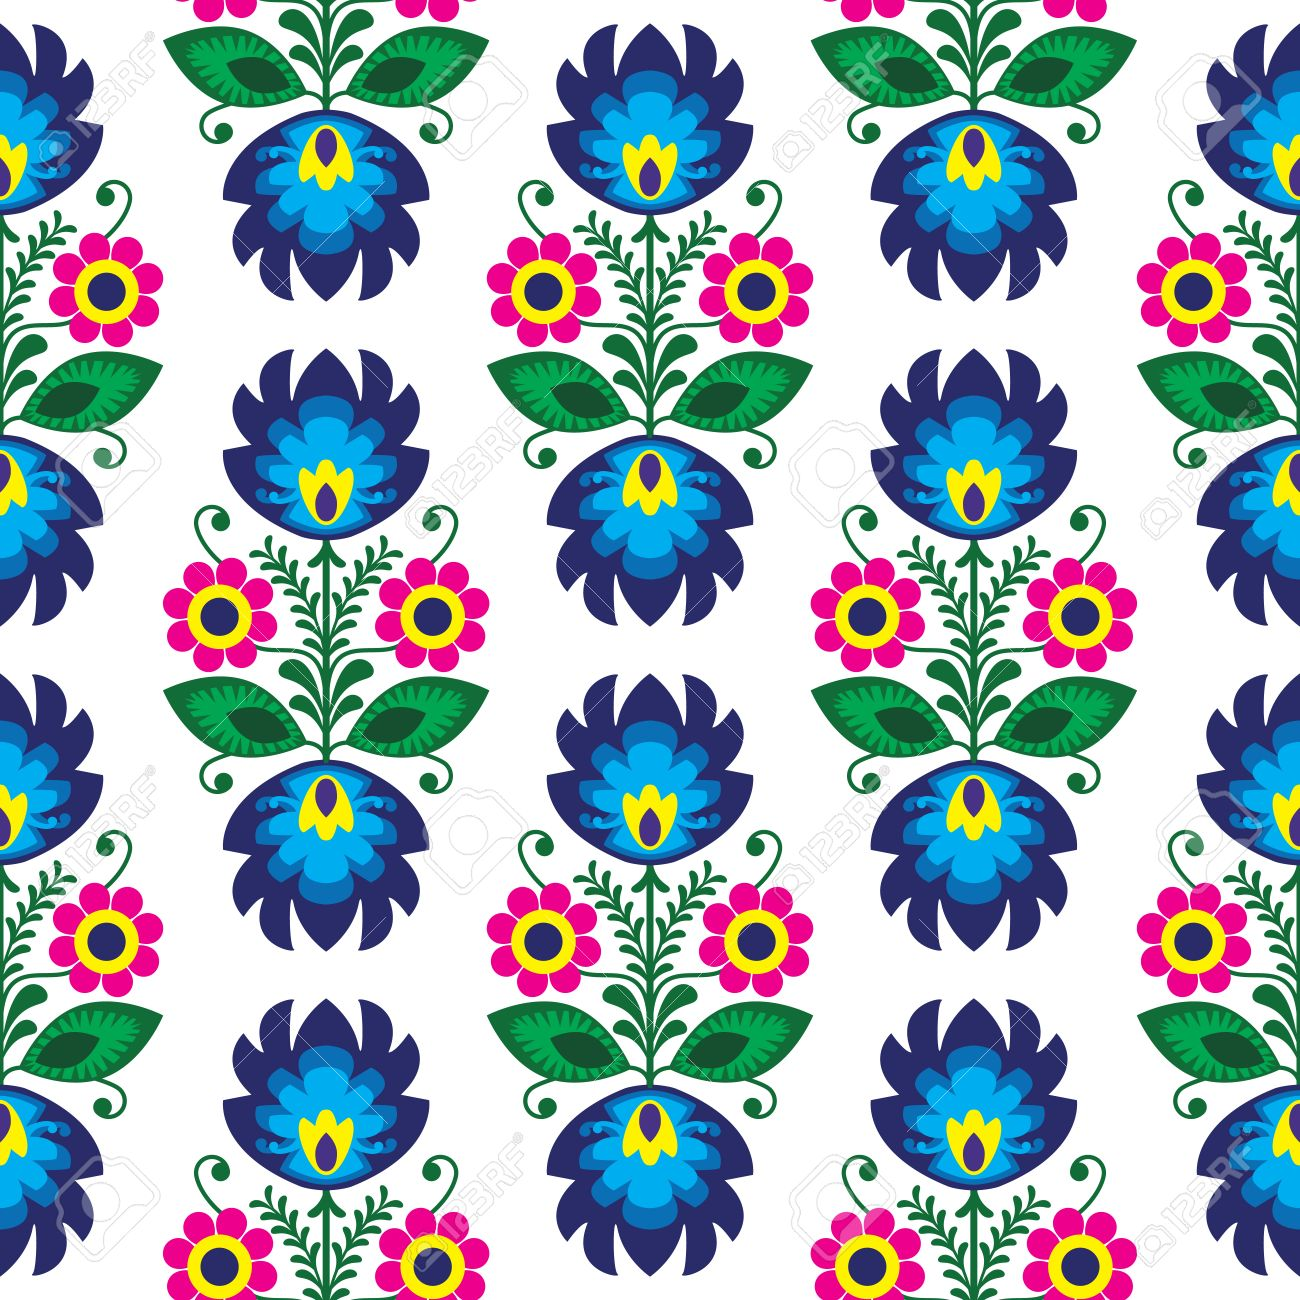 Seamless traditional floral polish pattern - ethnic background Stock Vector - 23884336